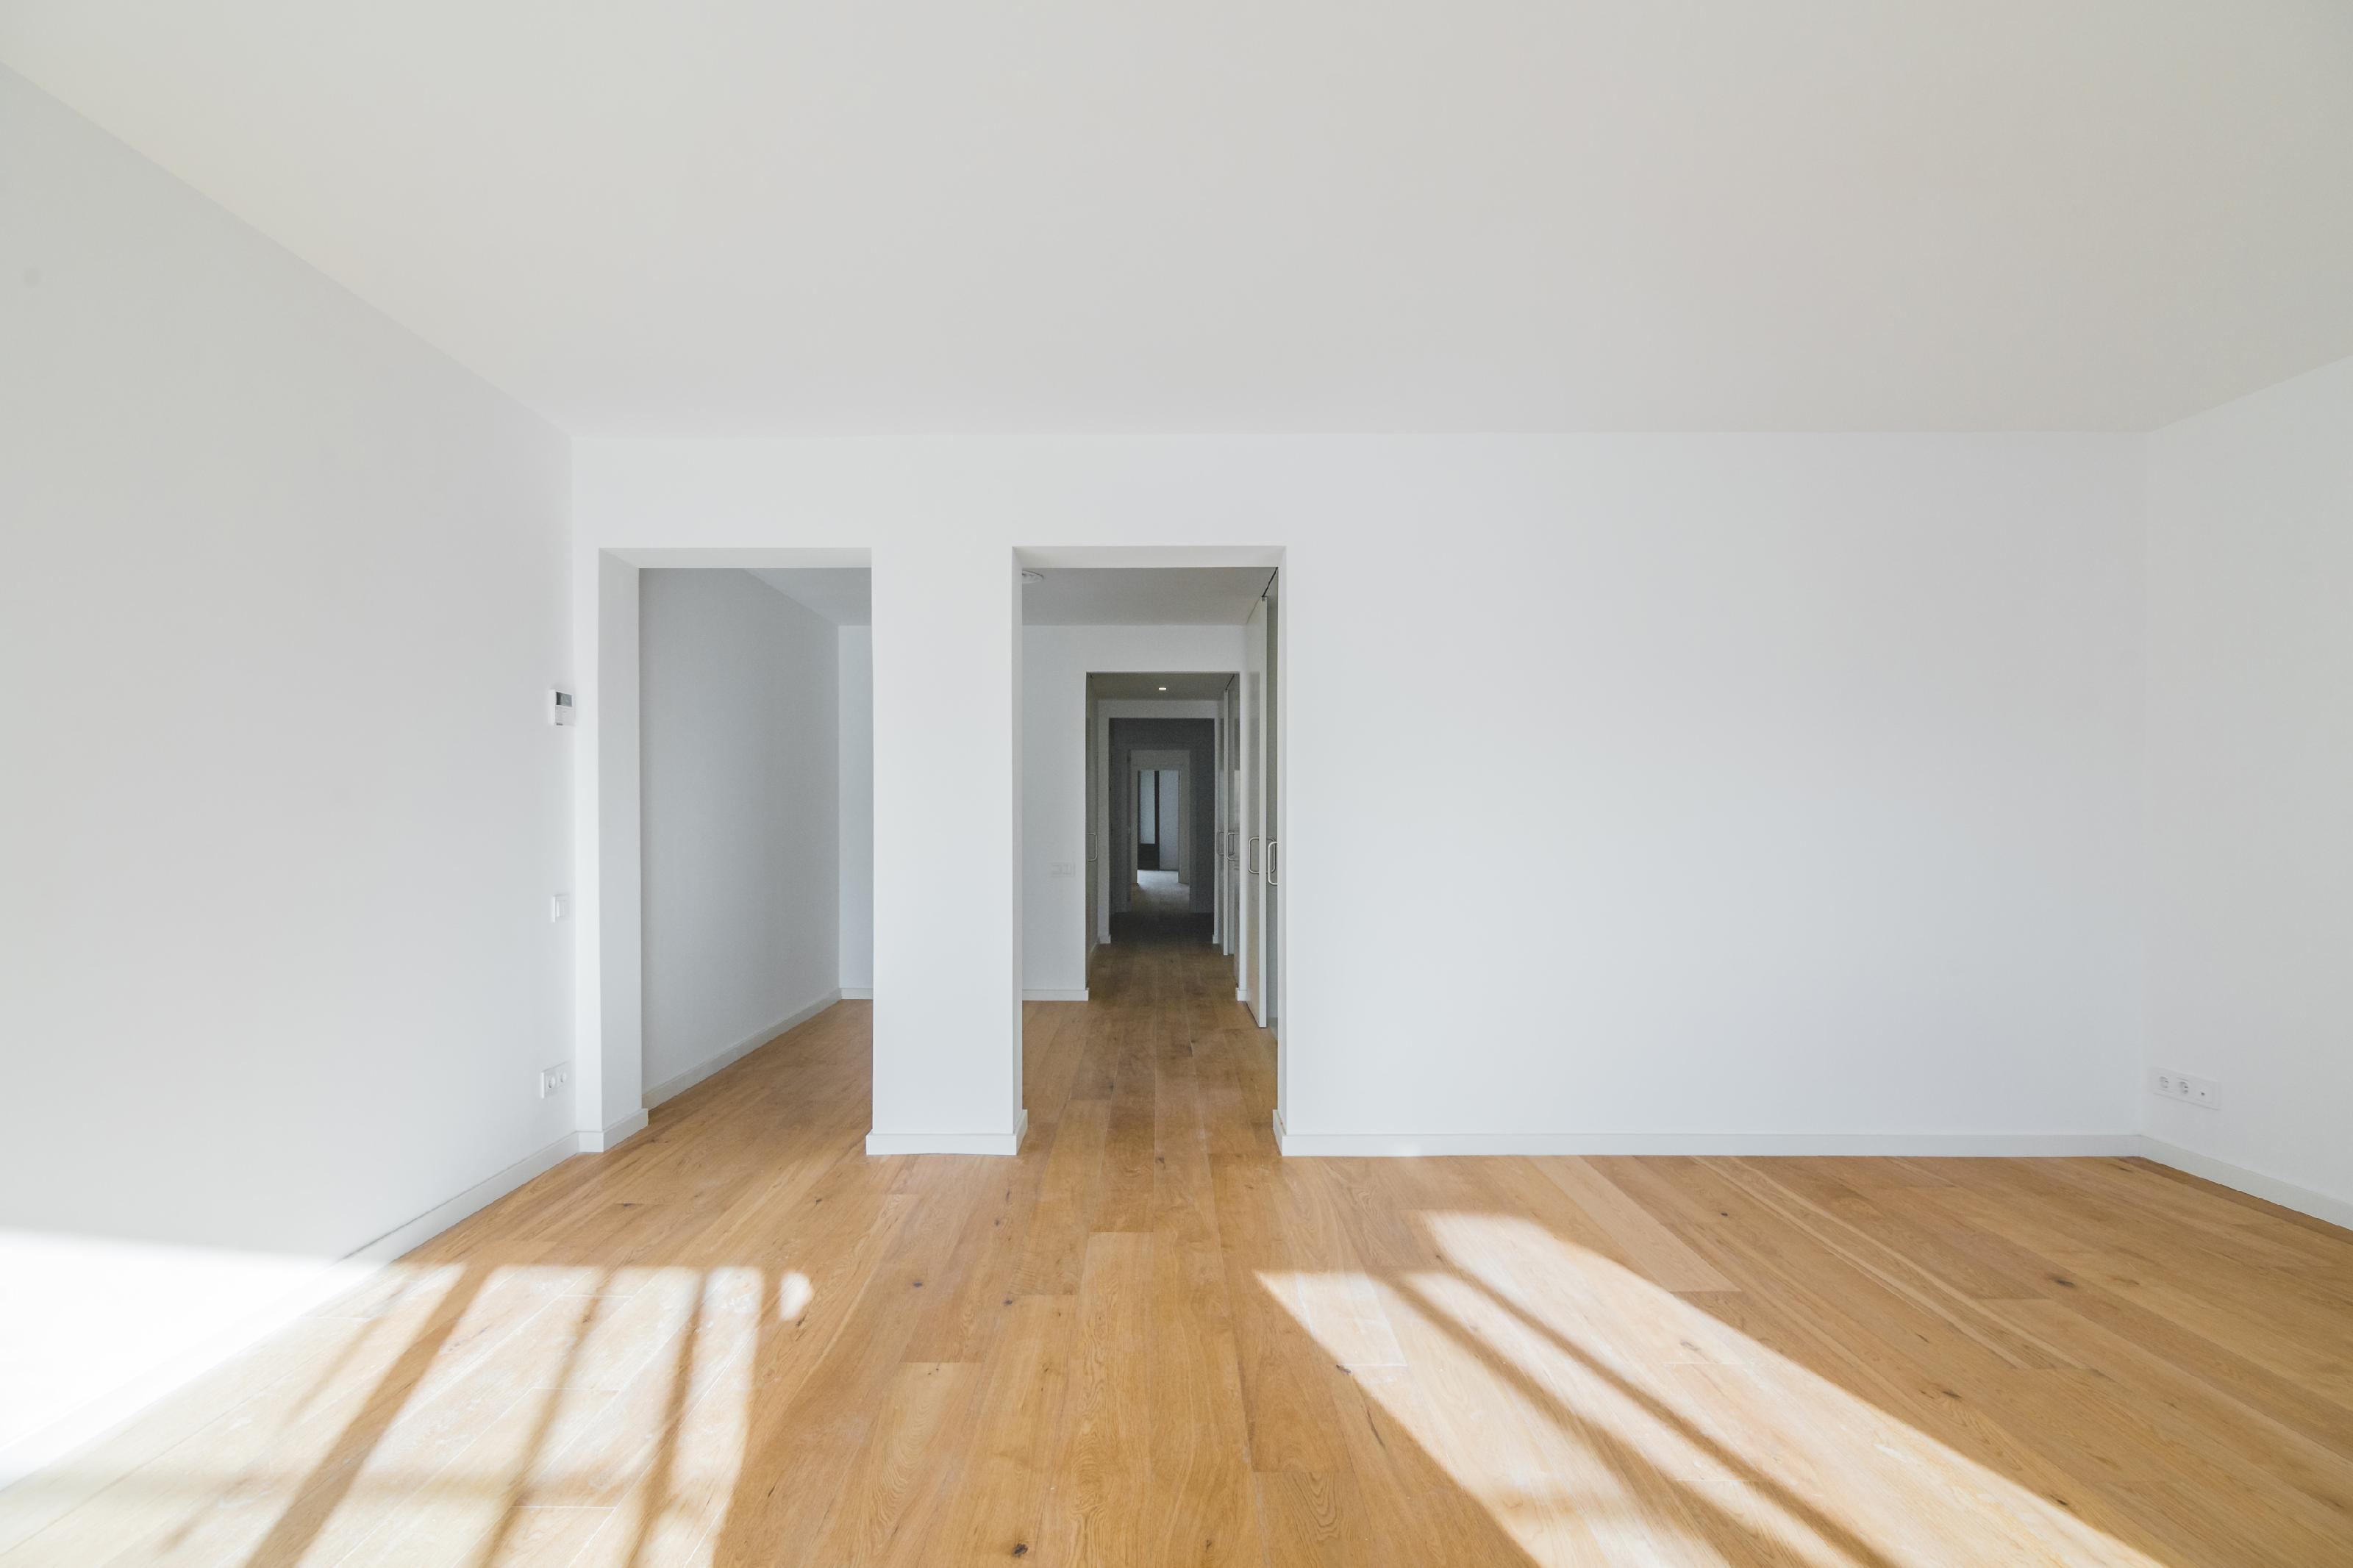 173872 Apartment for sale in Eixample, Old Left Eixample 3